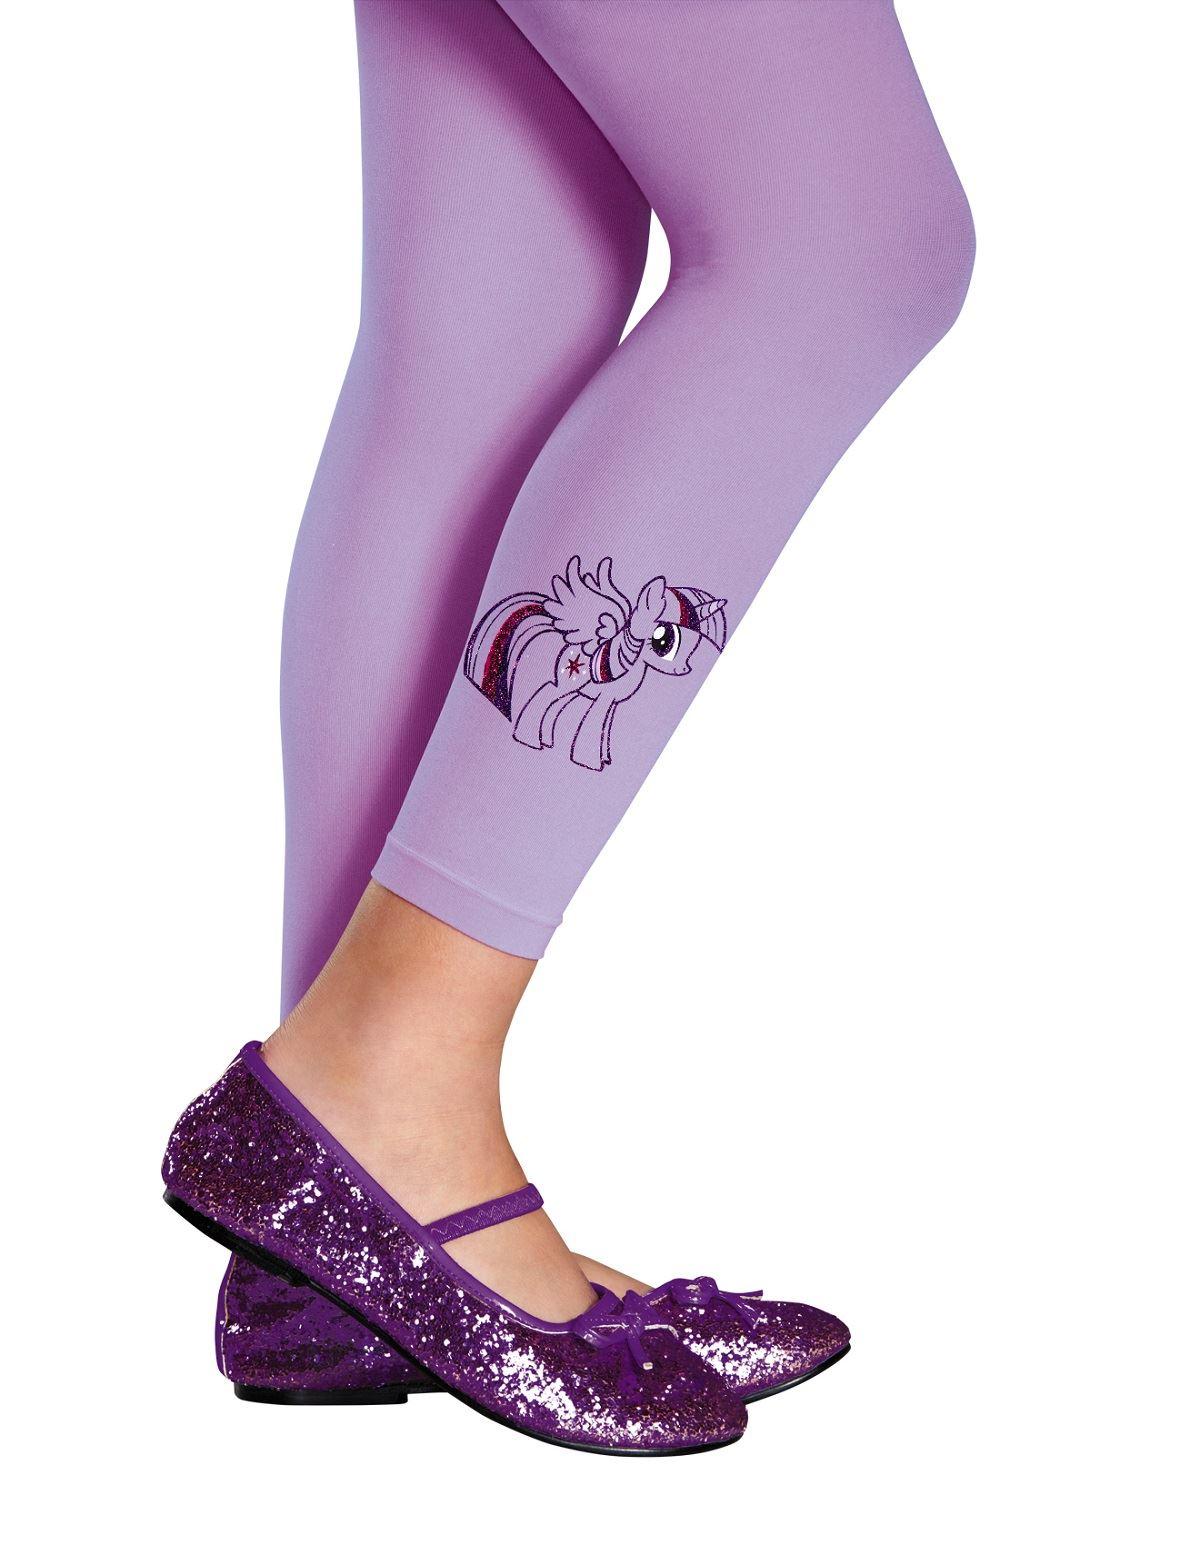 Comments about Spirit Halloween Kids Twilight Sparkle Tights - My Little Pony. These tights are intended to complete the look for young girls dressing up as a My Little Pony character. I ordered the tights for my 6-year-old and they were much too long rendering them completely unusable/5(3).